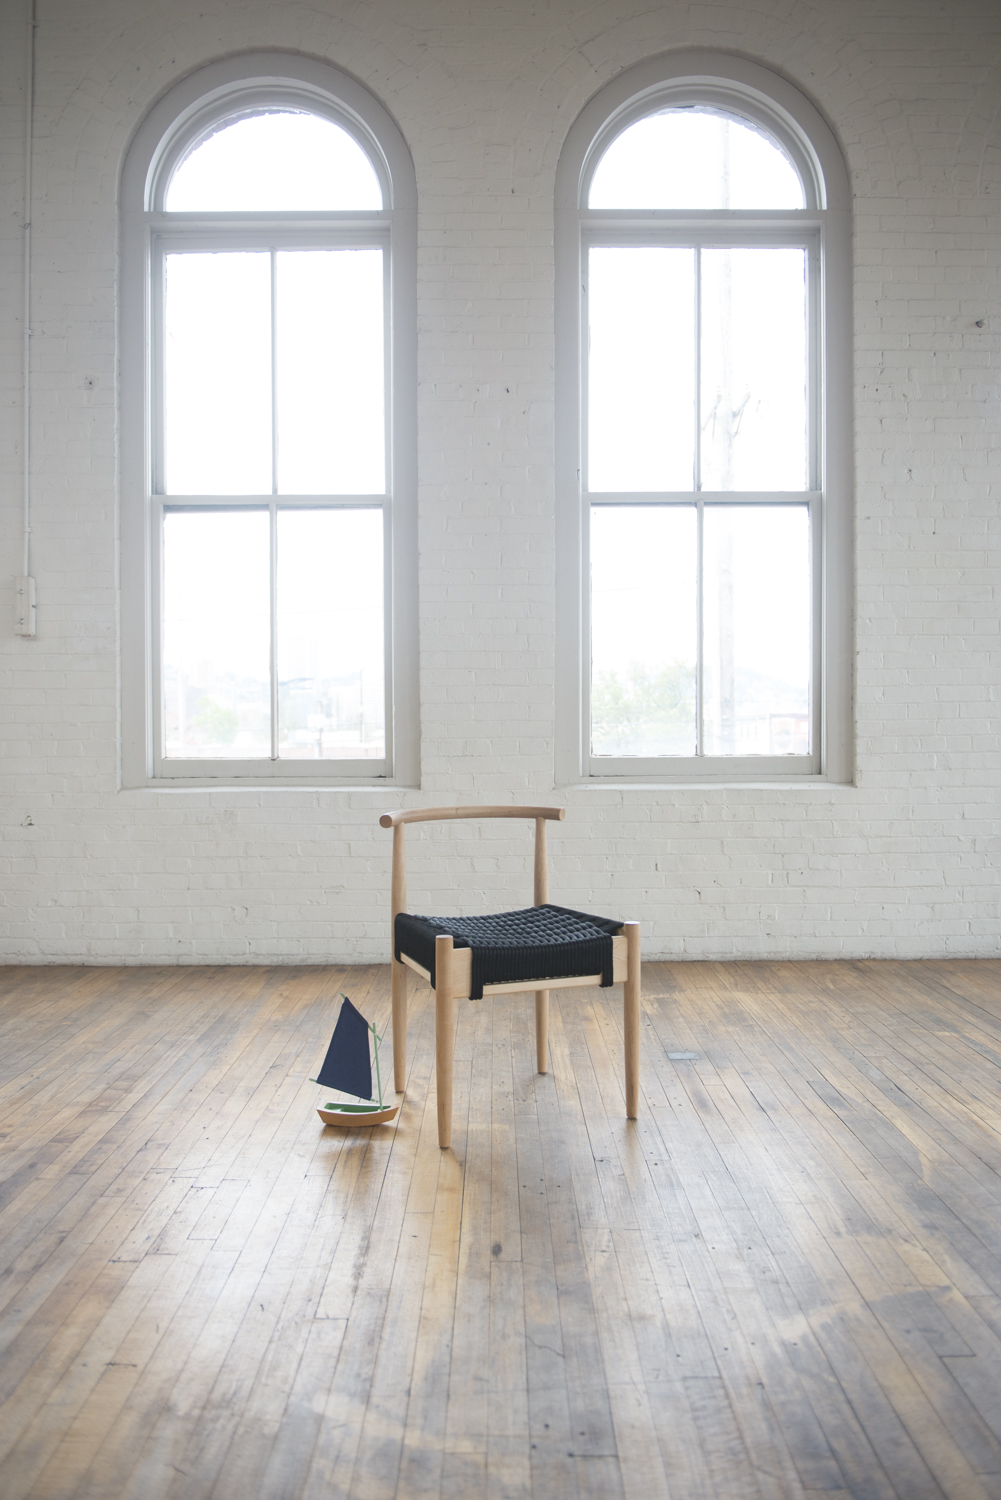 Habor Chair with a woven rope seat by Ben Klebba